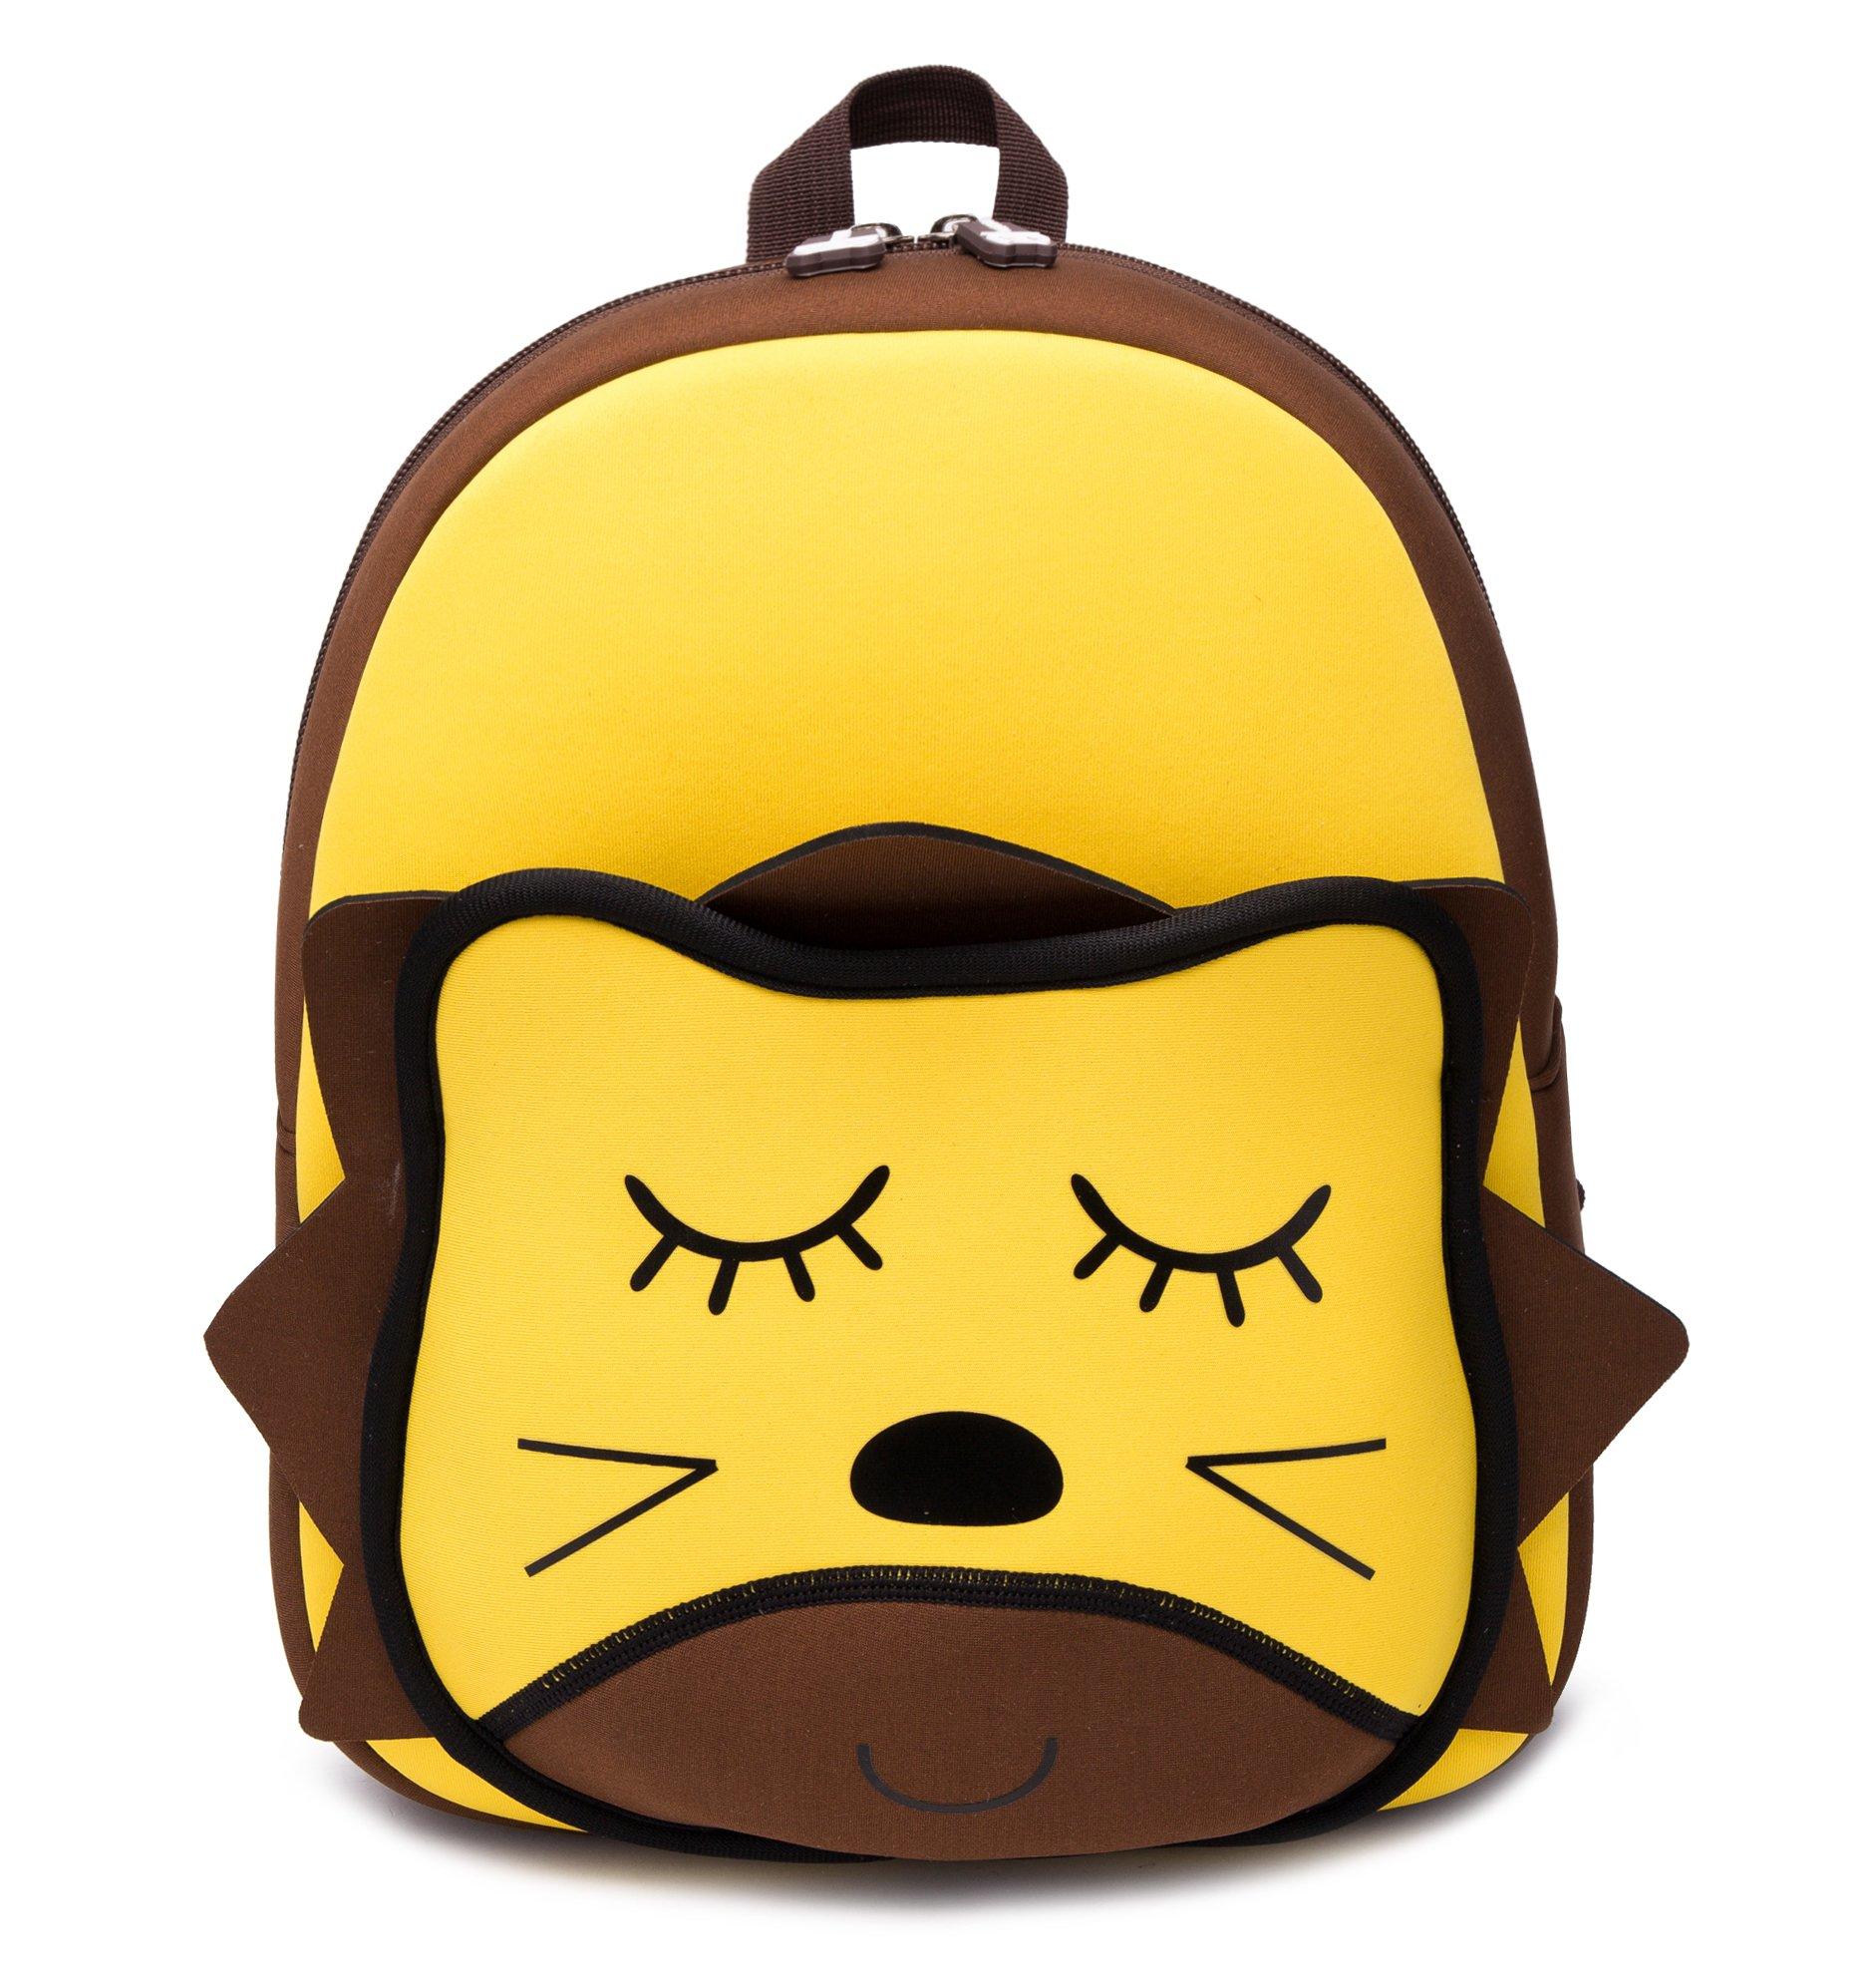 Cute Kids Backpack with Safety Harness Leash, 3D Lion Cartoon Neoprene Waterproof Toddler Bag Yellow